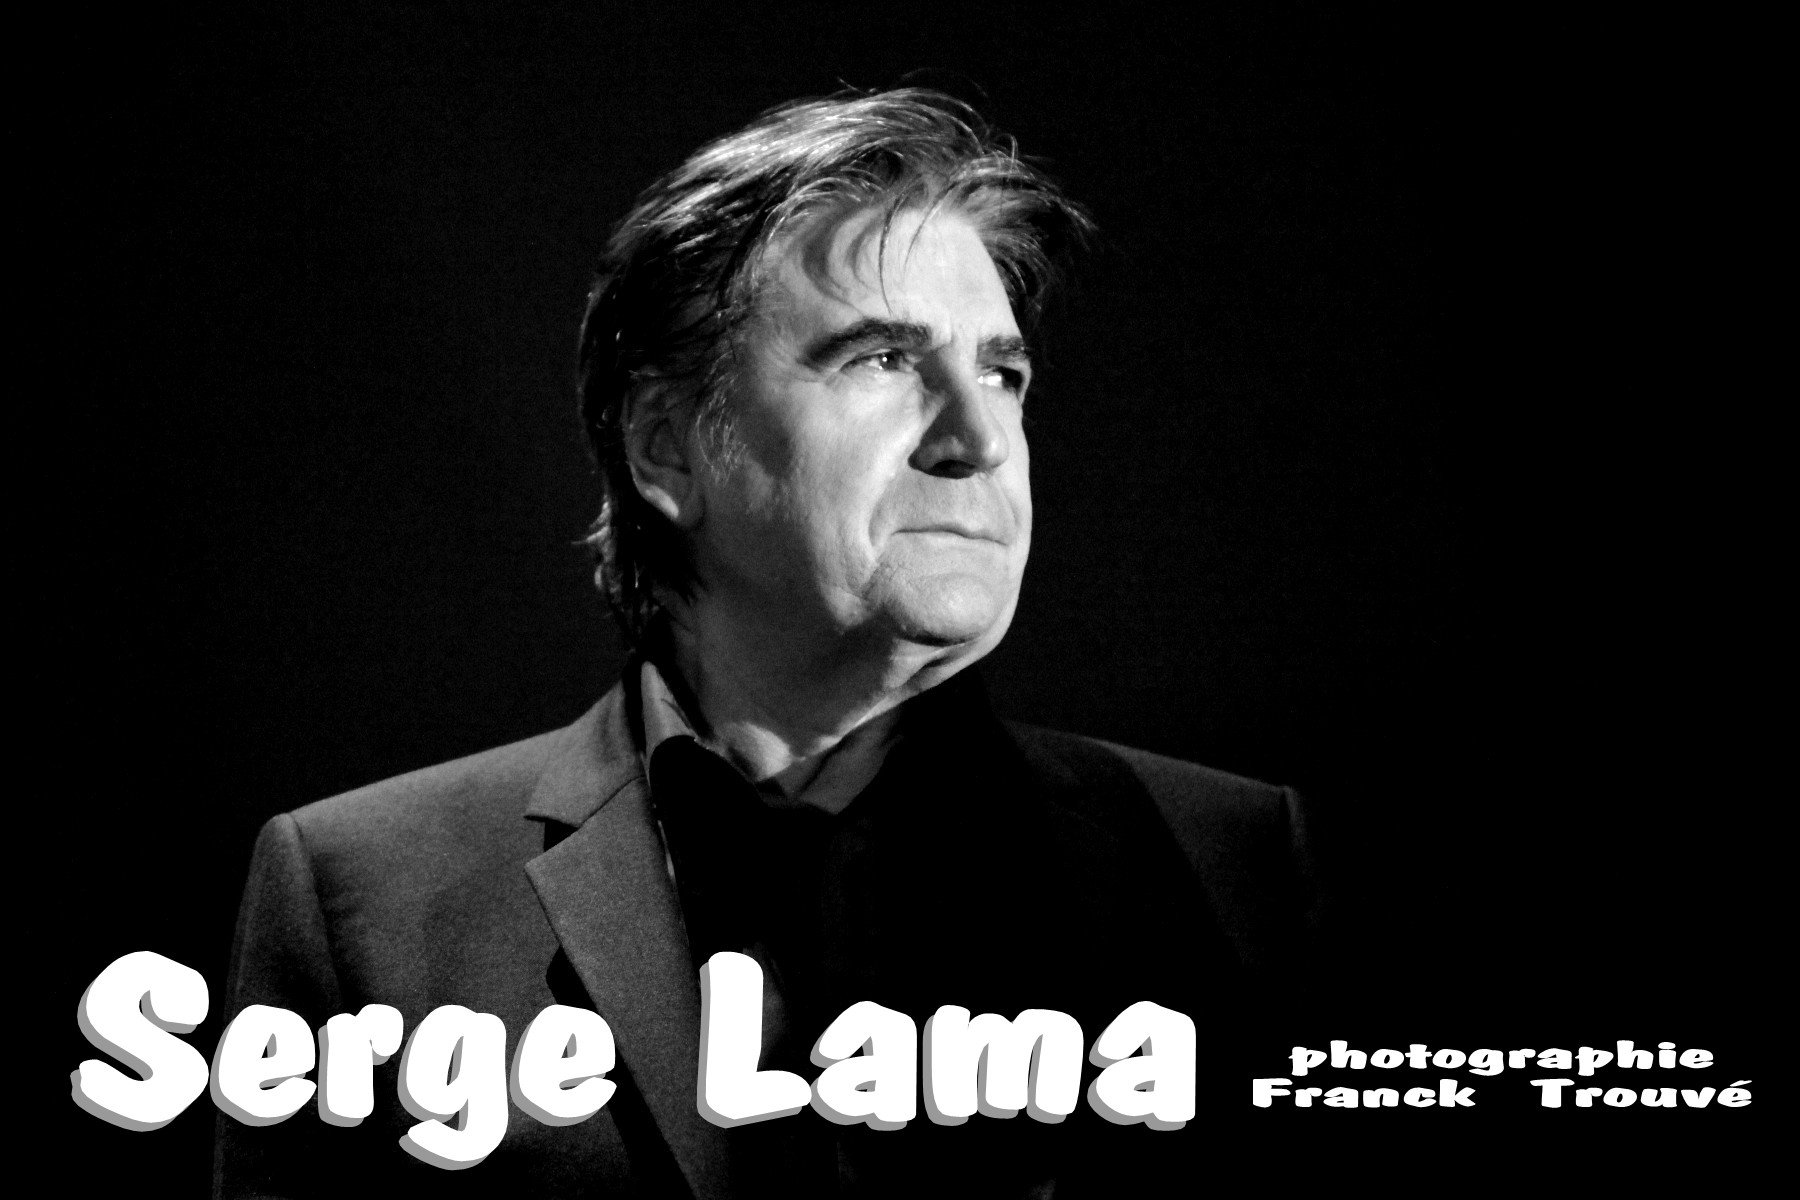 serge lama photo franck trouve